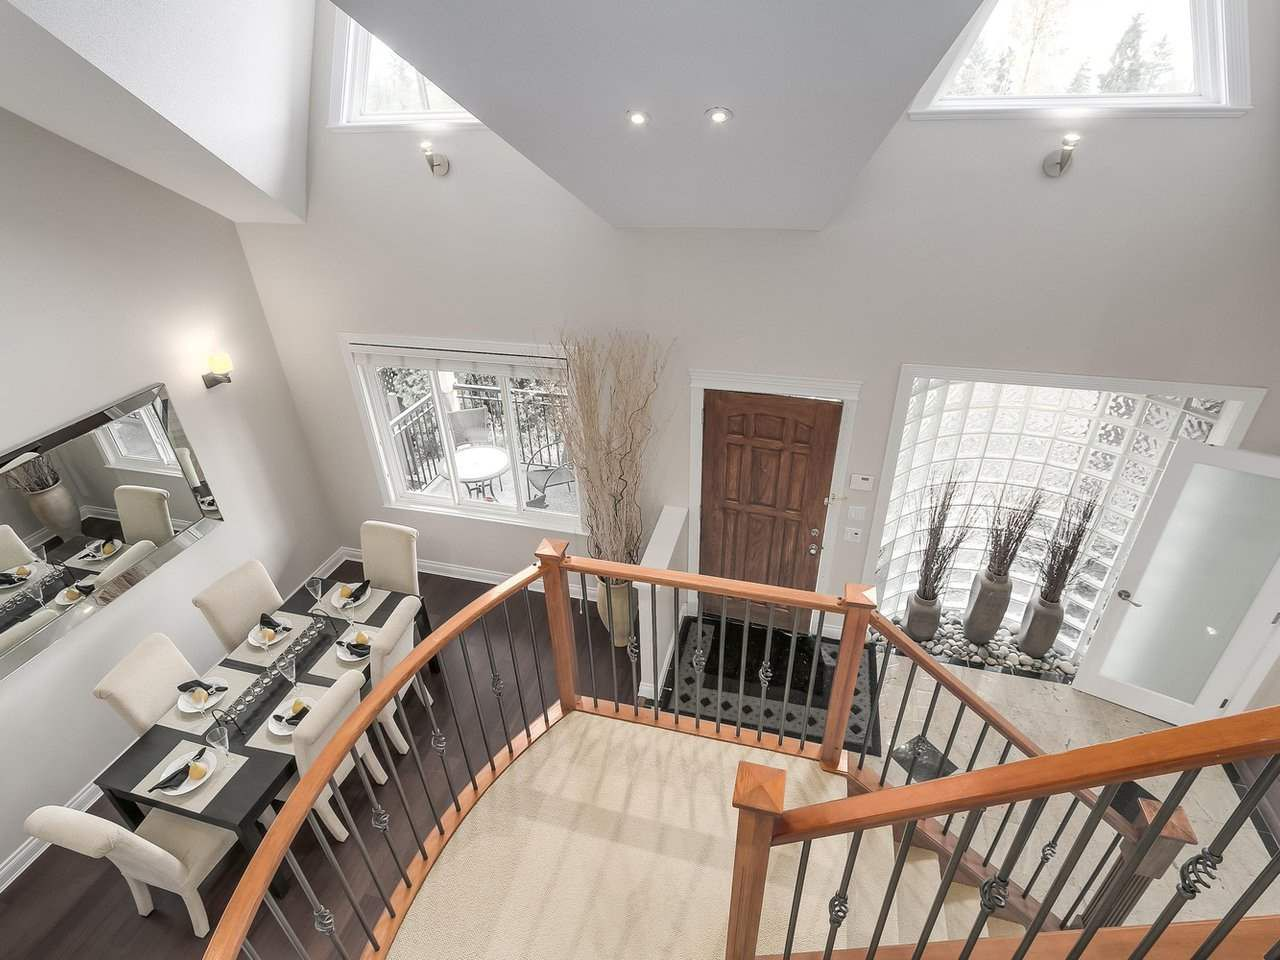 Photo 10: Photos: 658 E 4TH STREET in North Vancouver: Queensbury House for sale : MLS®# R2222993